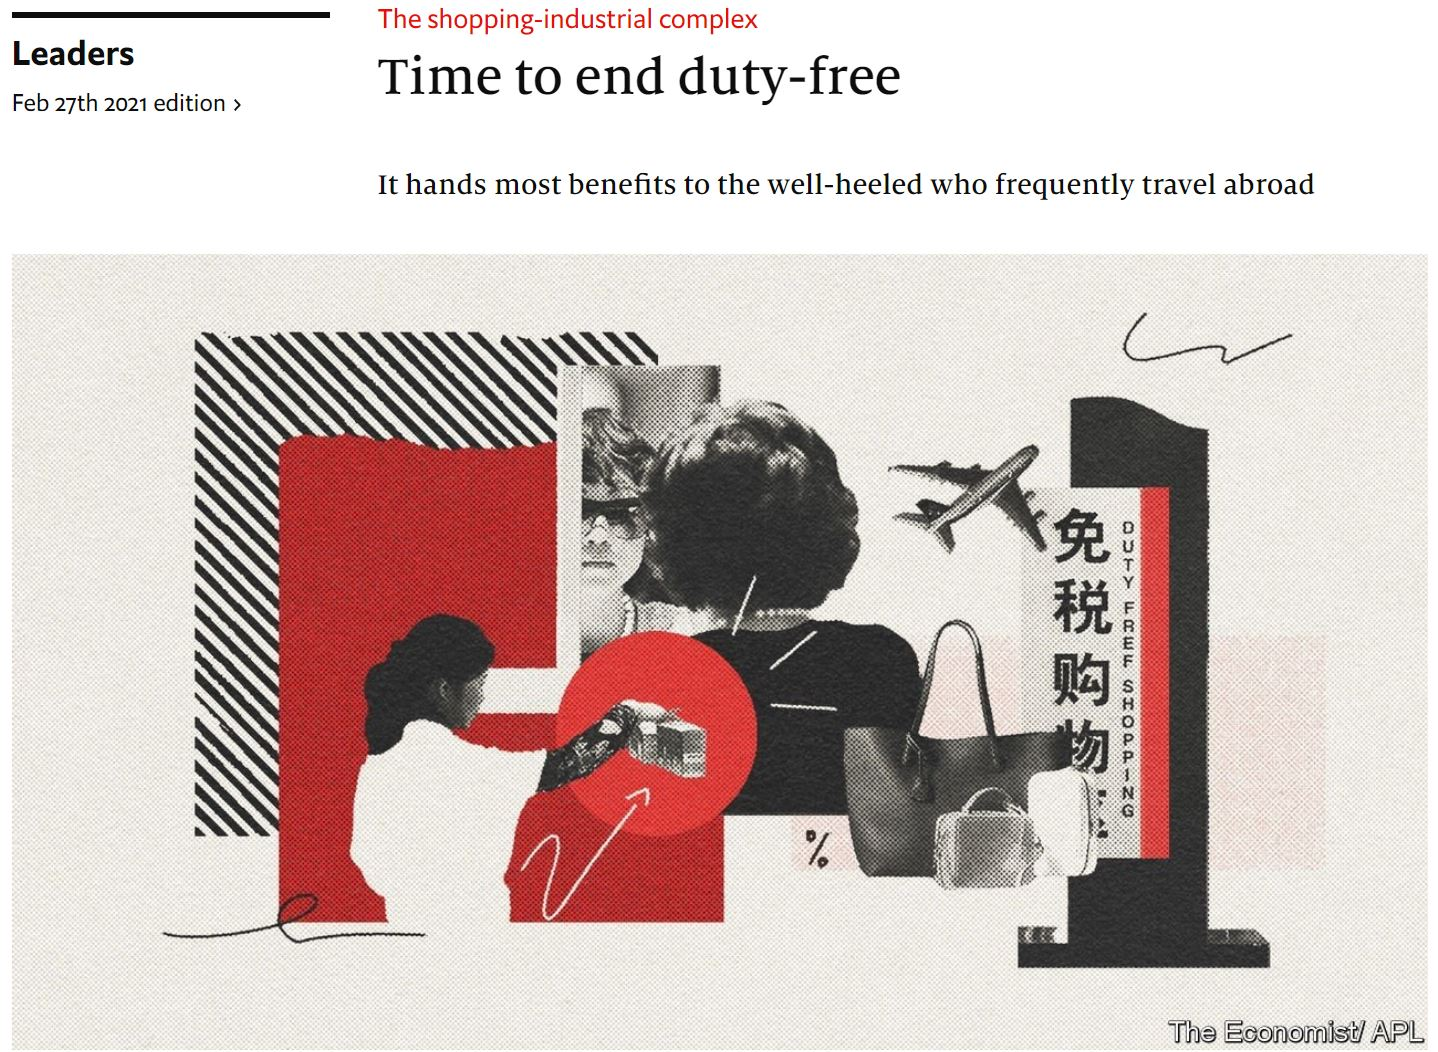 econ_2021-02-27_Time to end duty-free